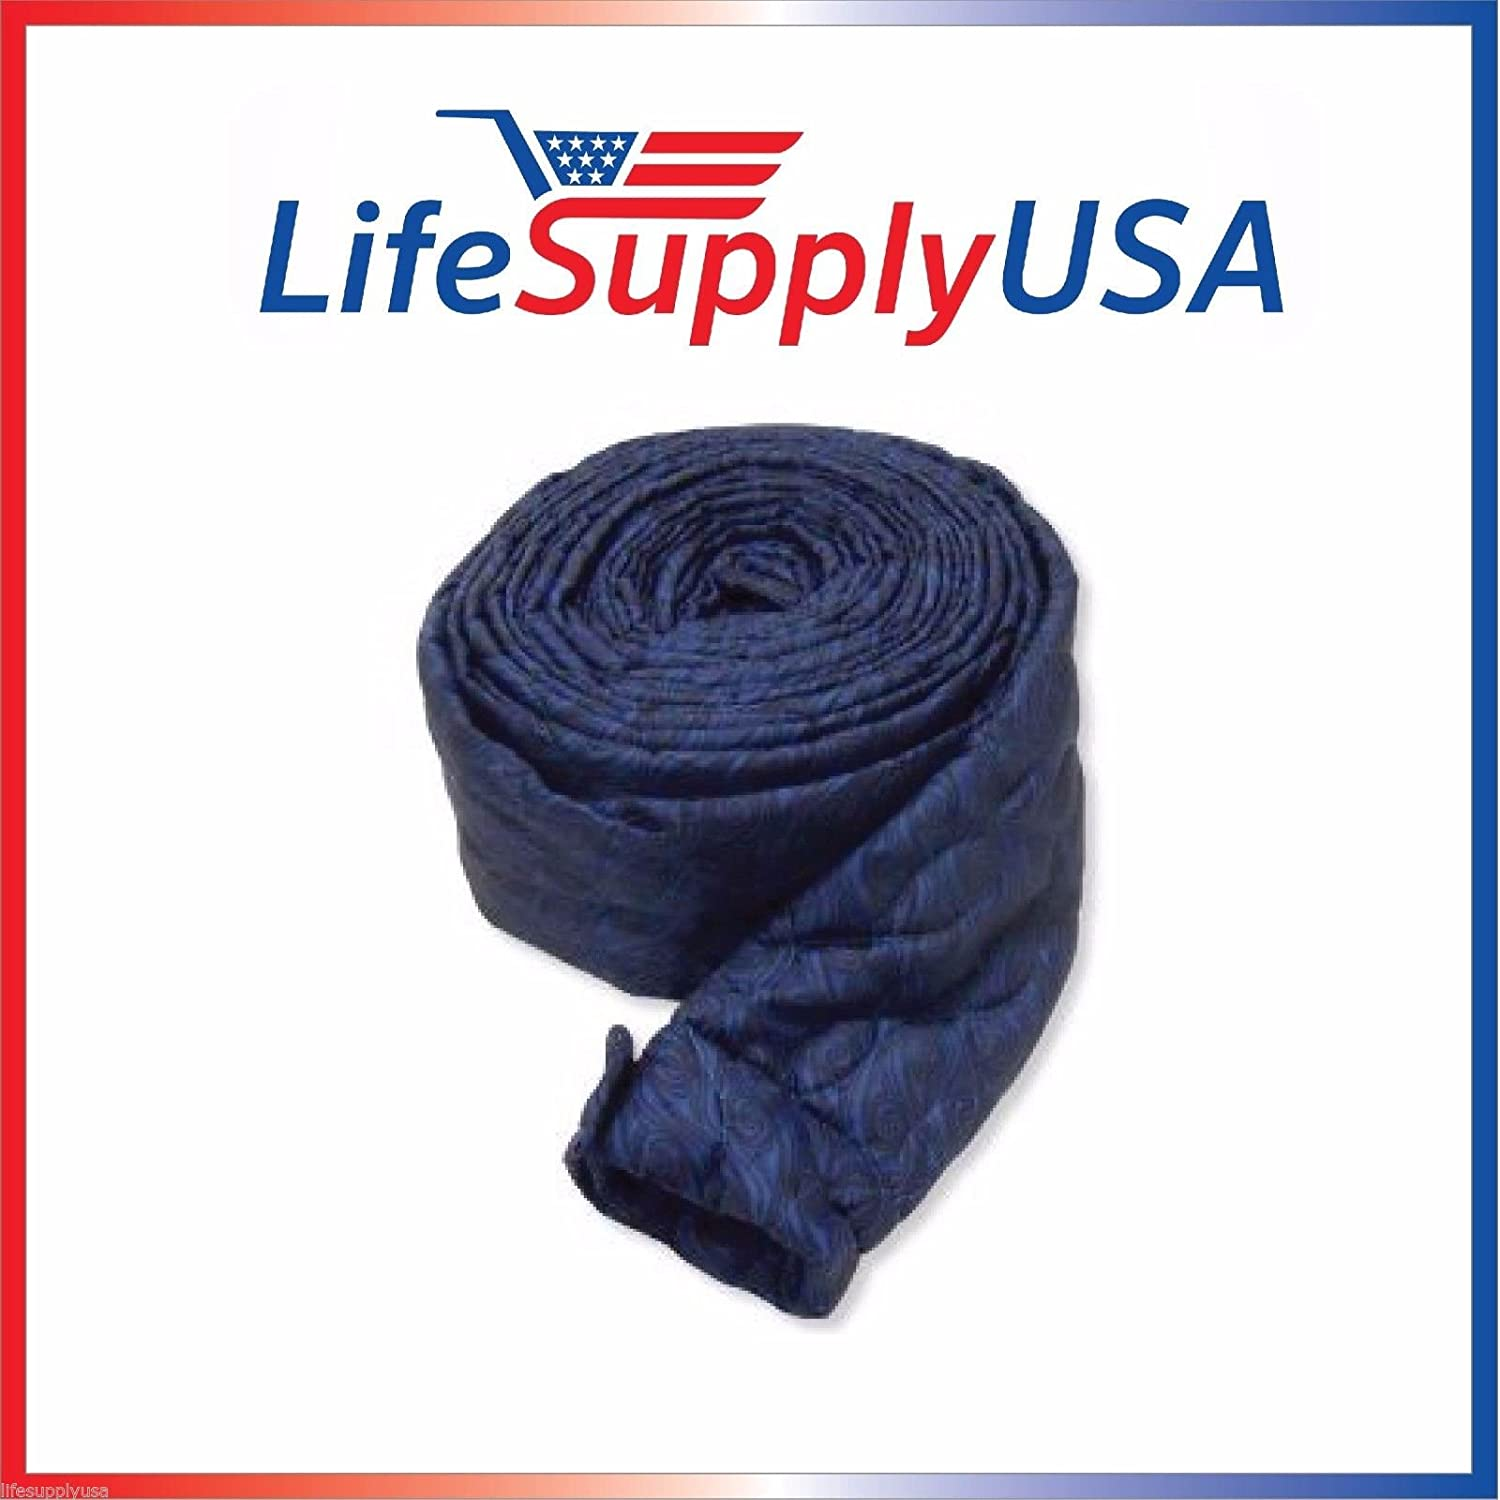 LifeSupplyUSA 35 Ft Quilted Padded Central Vacuum Hose Cover with Zipper AX-AY-ABHI-53401